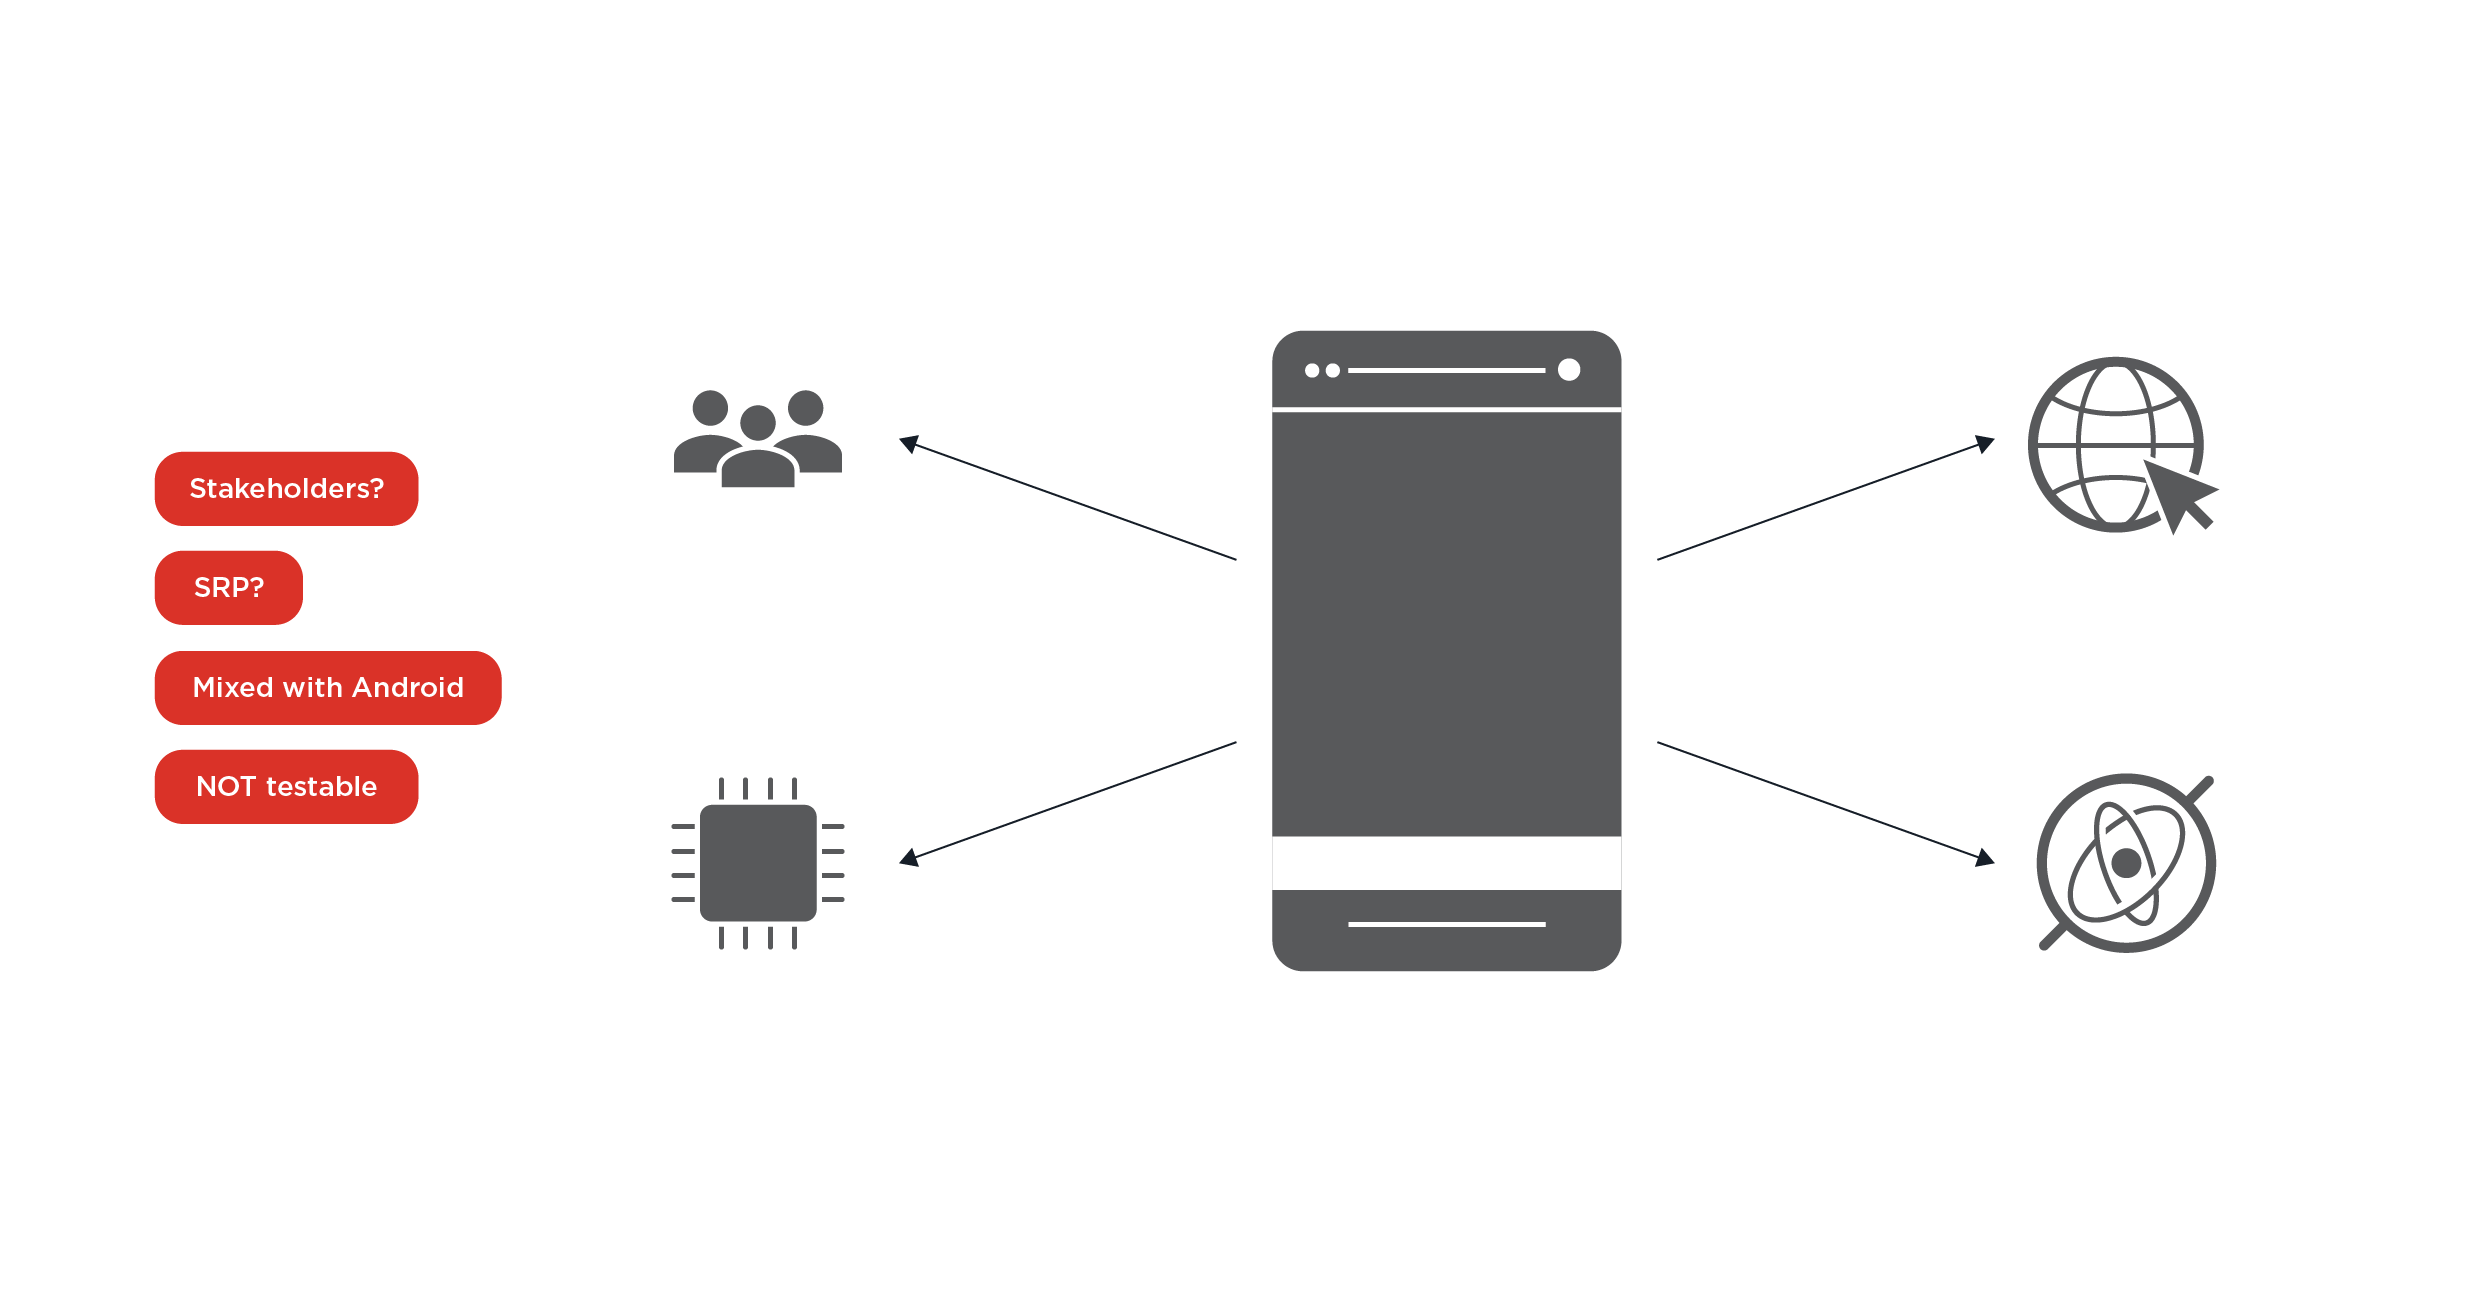 android architecture part 2 - 2